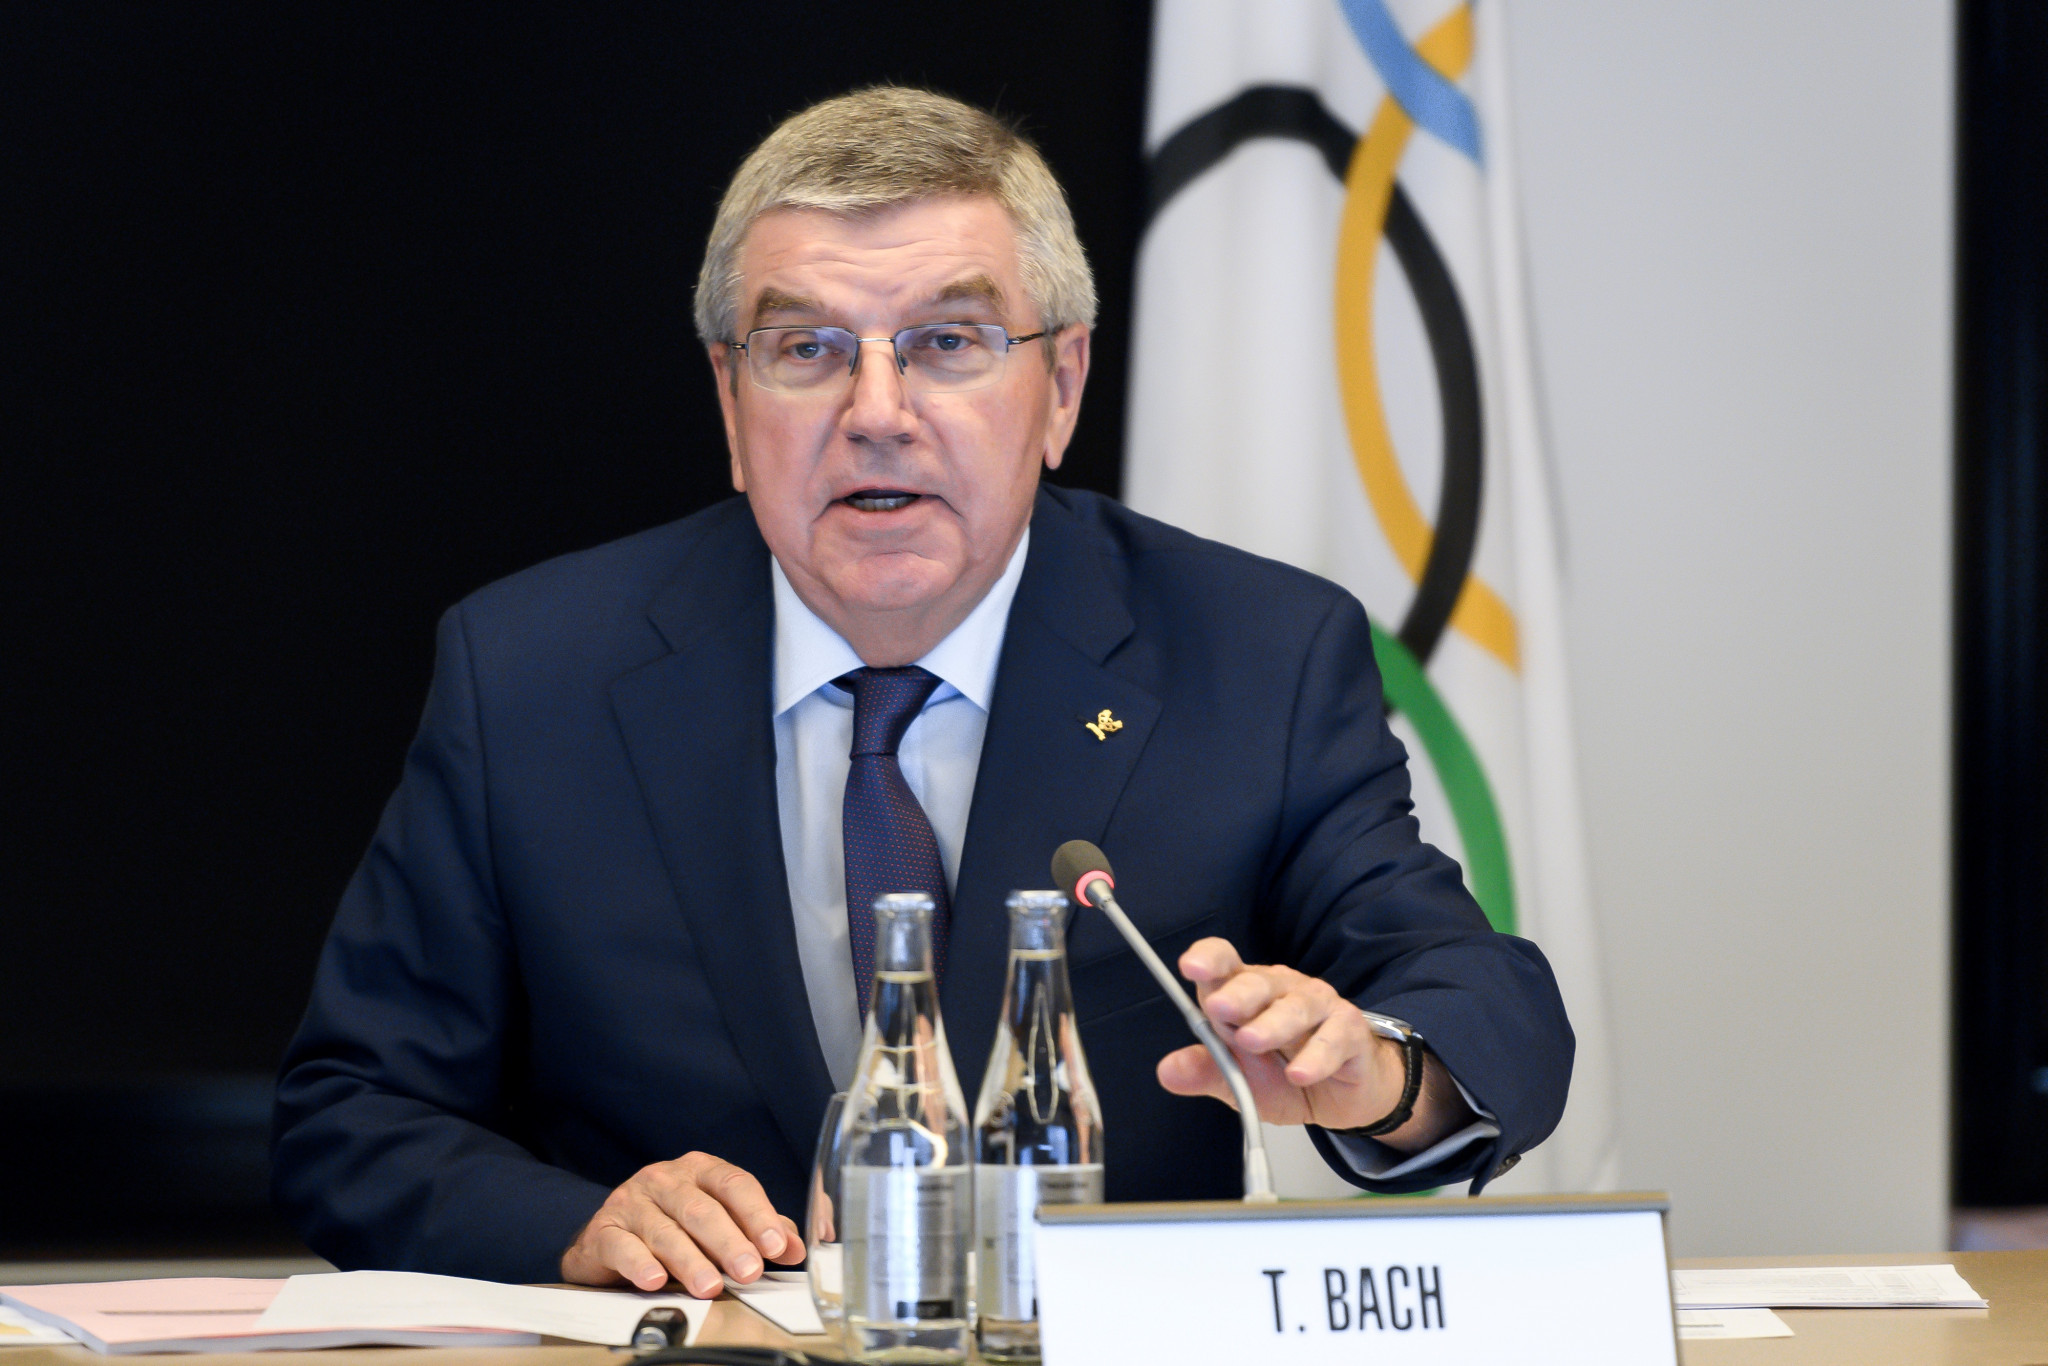 IOC President Thomas Bach has his trusted allies and lieutenants, who are often given high-profile roles within the organisation ©Getty Images